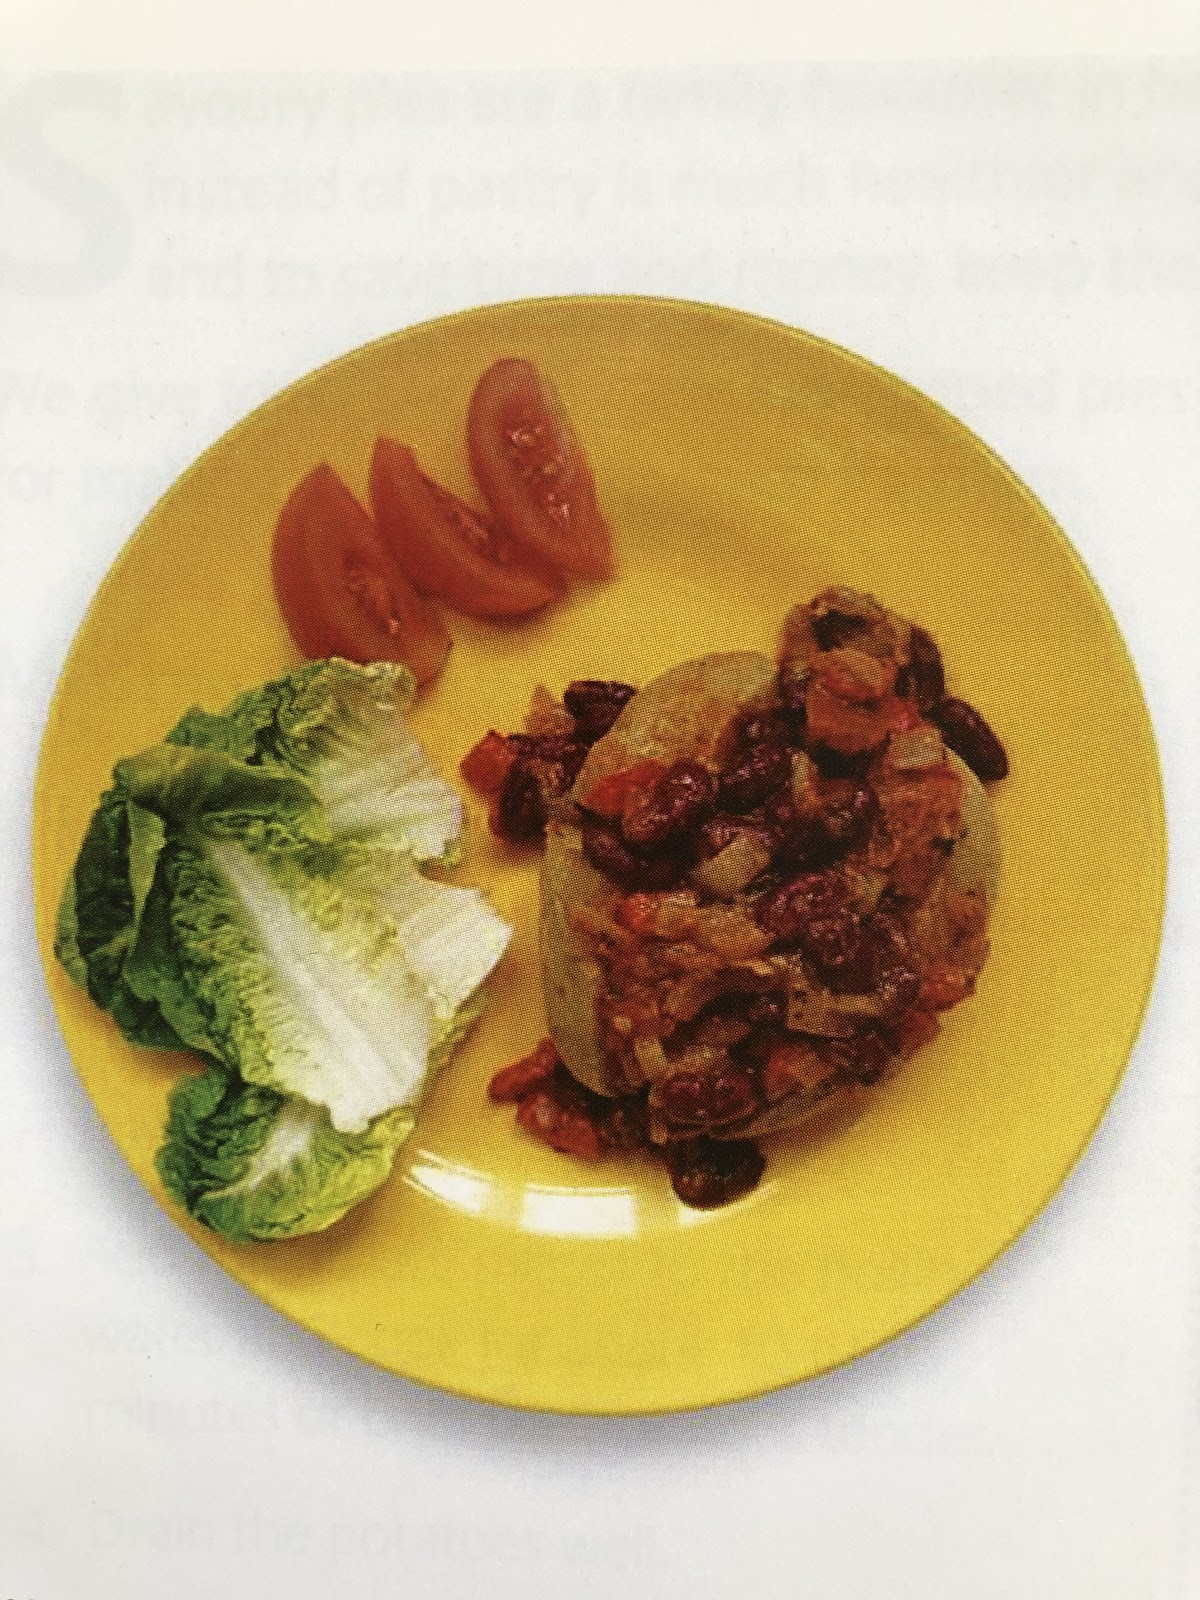 Jack potato and vegetable chile served with tomato lettuce